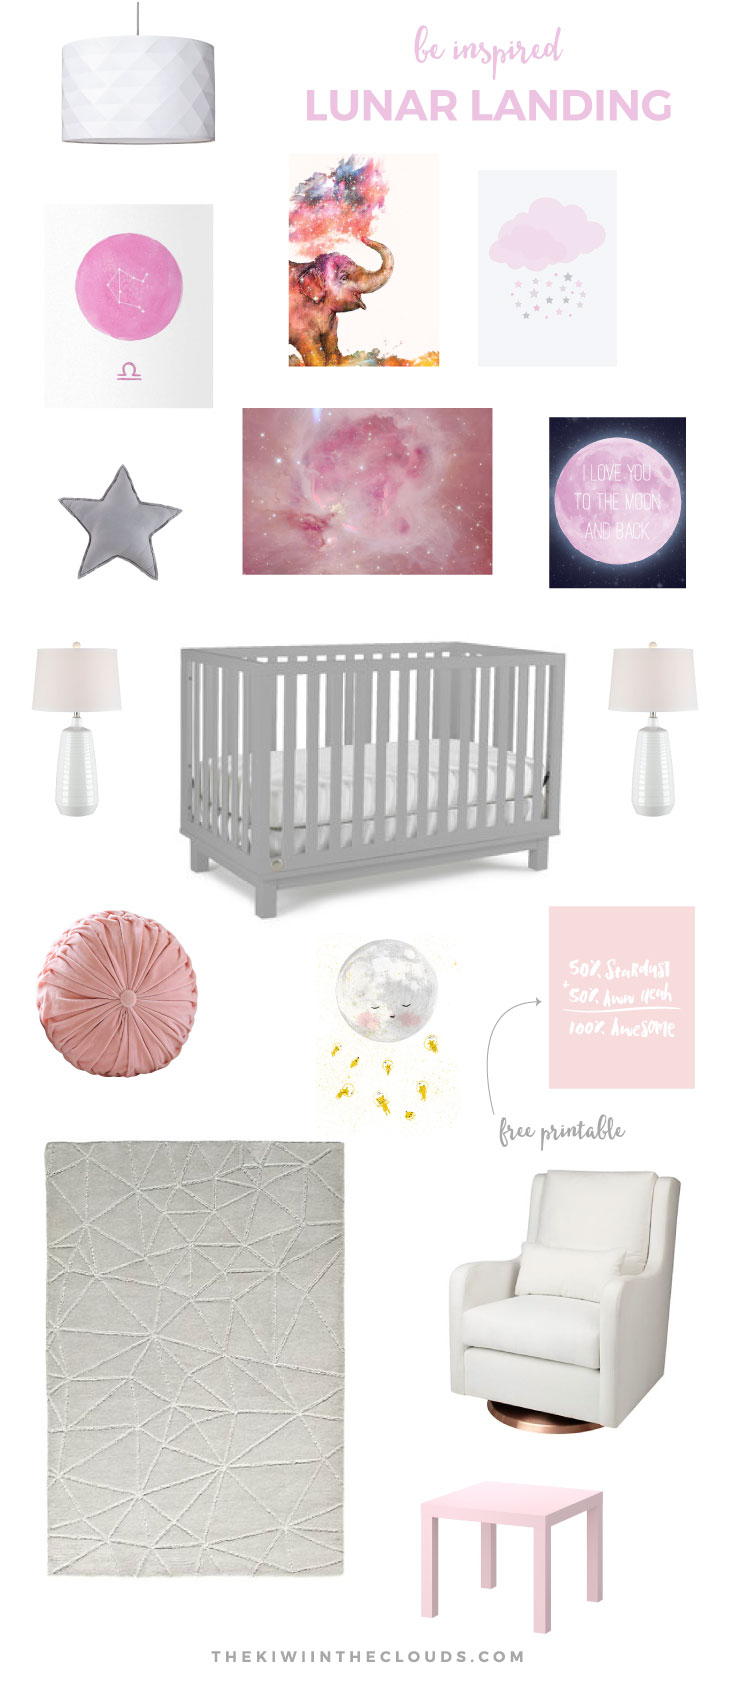 Space Themed Nursery For Girls | Repin to save this lovely pink and gray themed girls' nursery. Plus there's a FREE 8x10 art print download for you too!